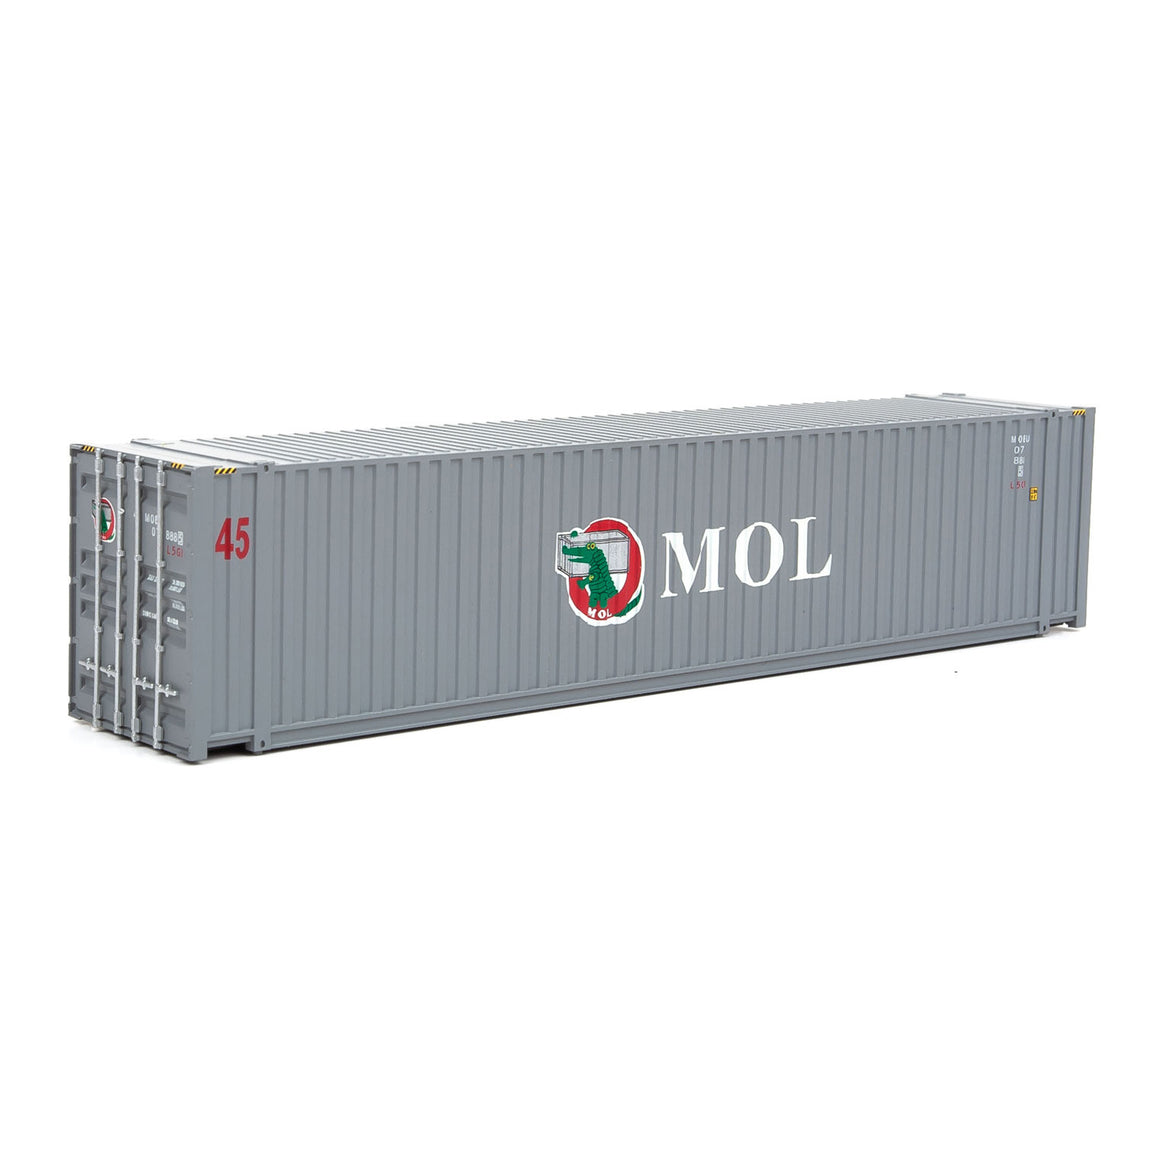 HO Scale: 45' CIMC Container - Mitsui OSK